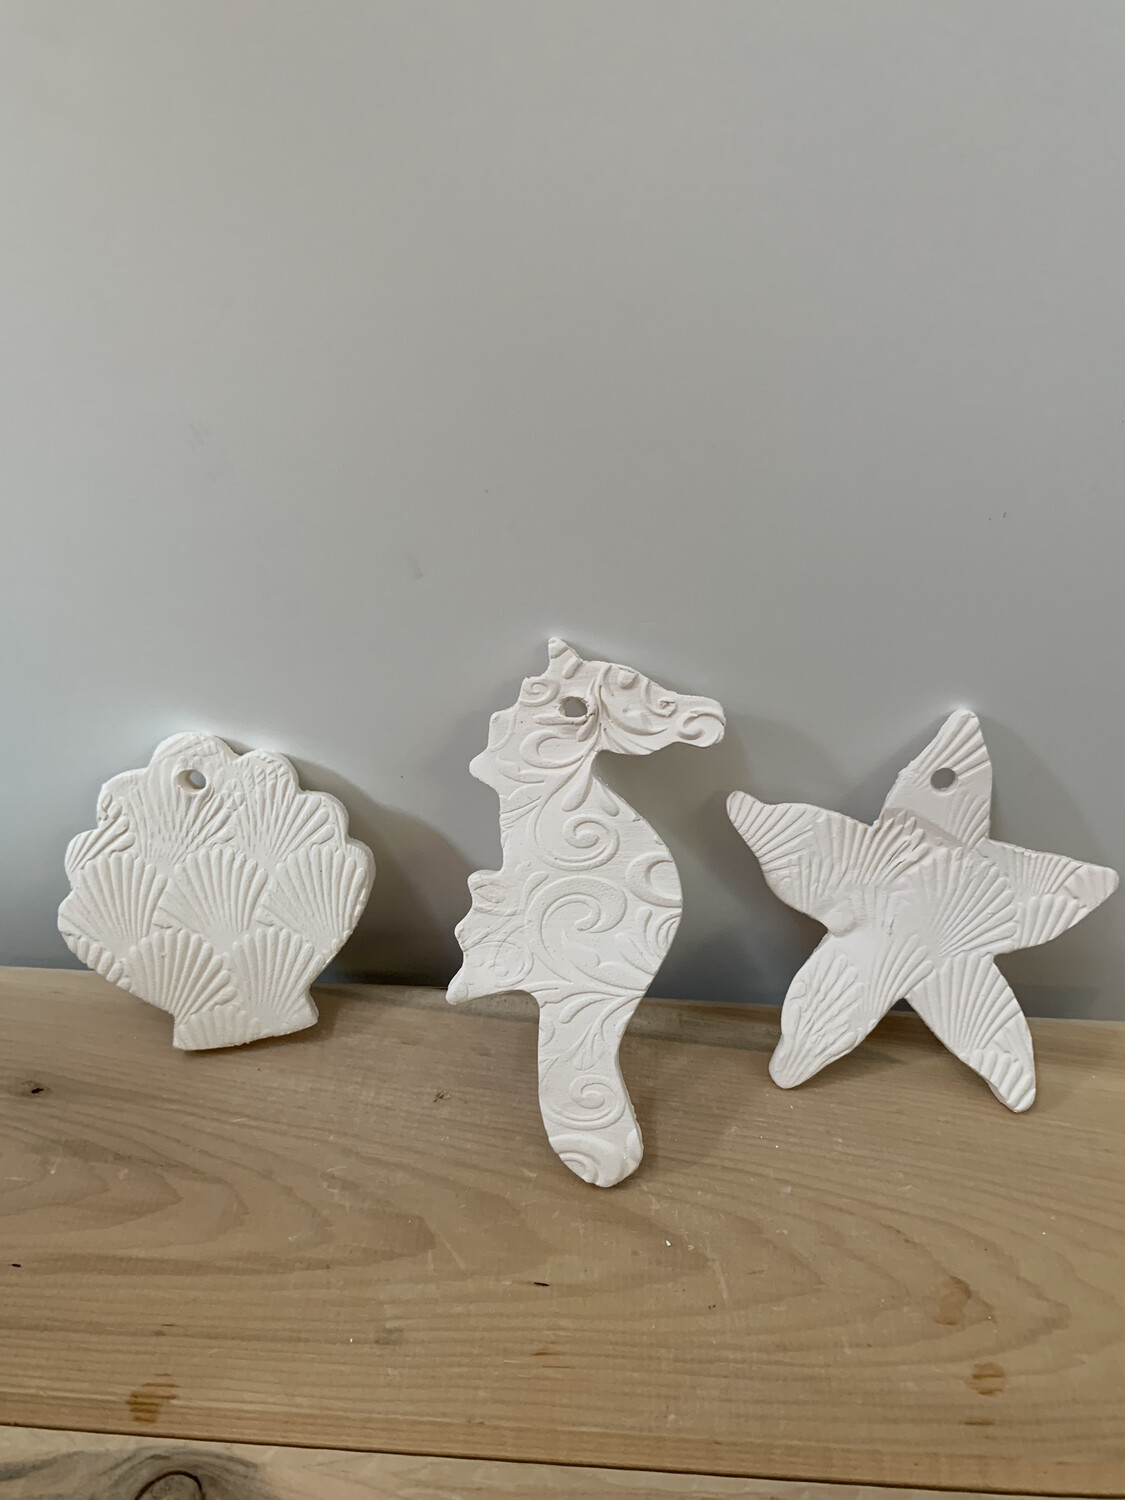 Paint Your Own Pottery - Ceramic   - Set of 3 Stone Harbor NJ Christmas Ornaments - Scallop Shell, Starfish, Seahorse